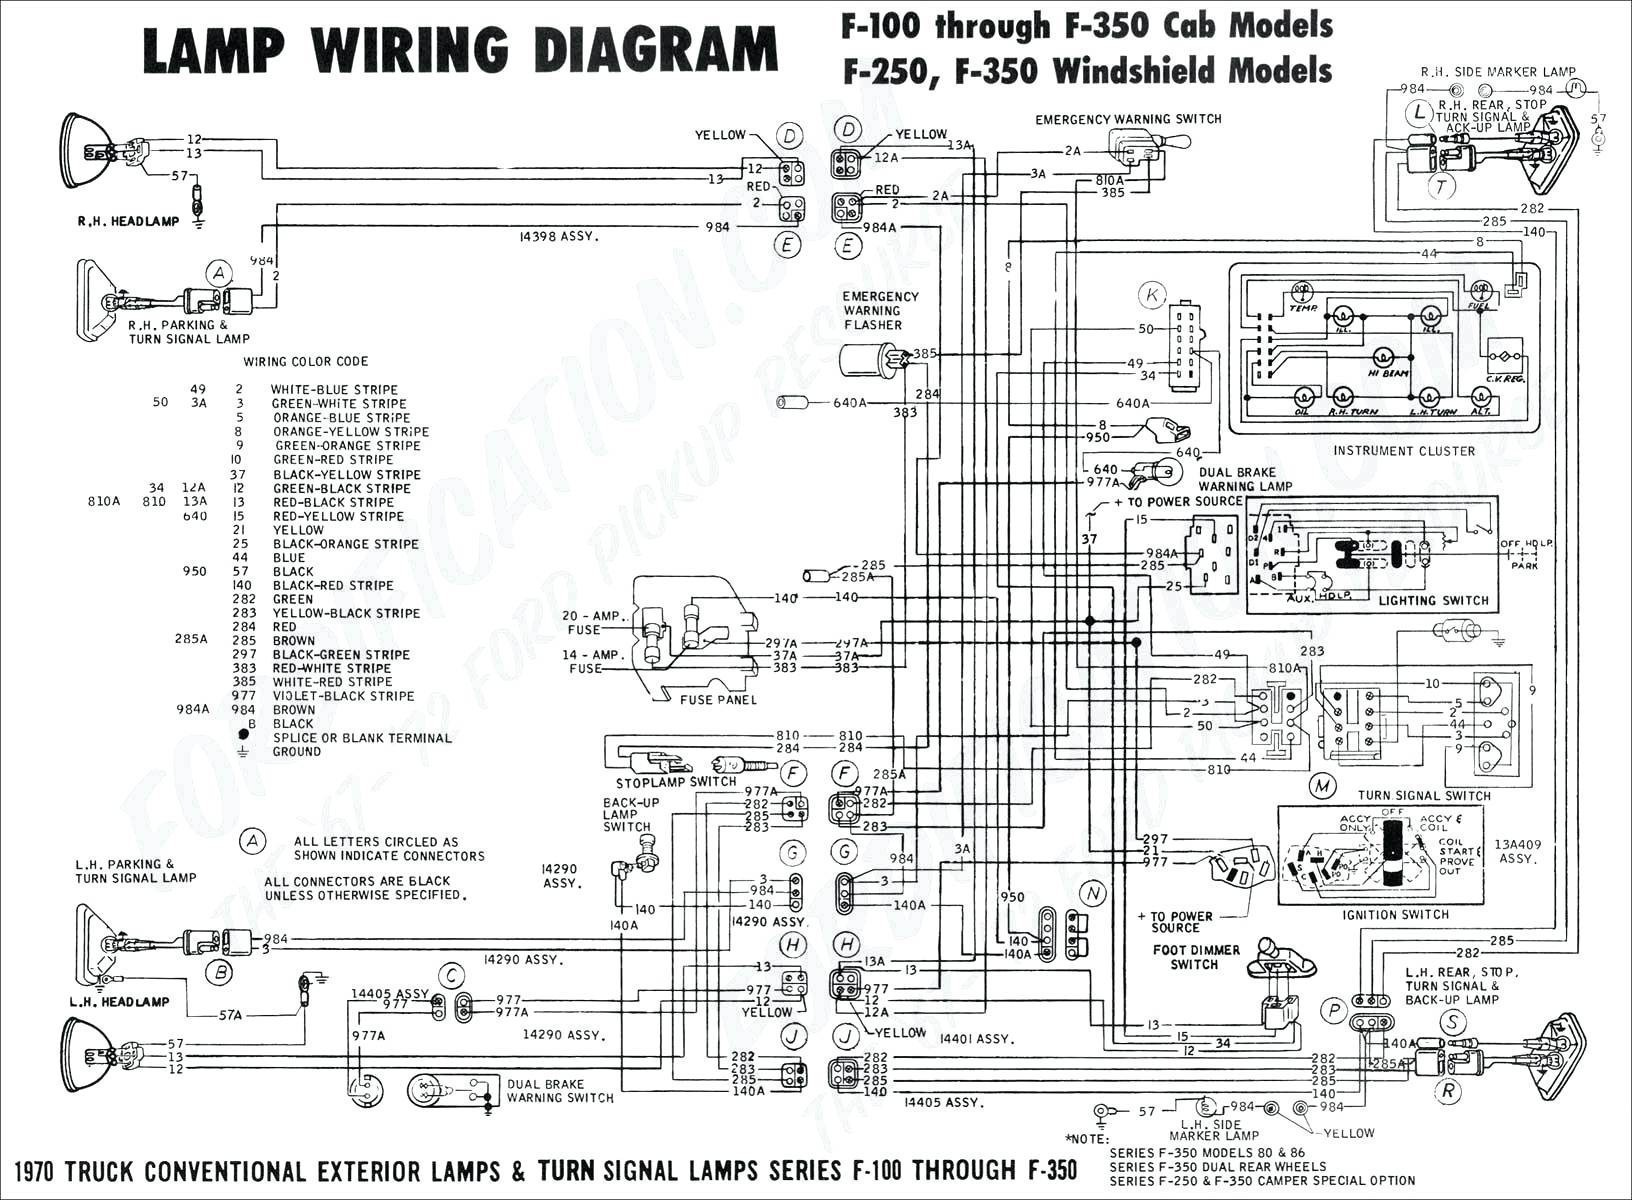 wiring diagram mitsubishi space wagon opinions about wiring diagram u2022  rh hunzadesign co uk Mitsubishi Mini Truck 4x4 2002 Mitsubishi Lancer Radio  Wiring ...